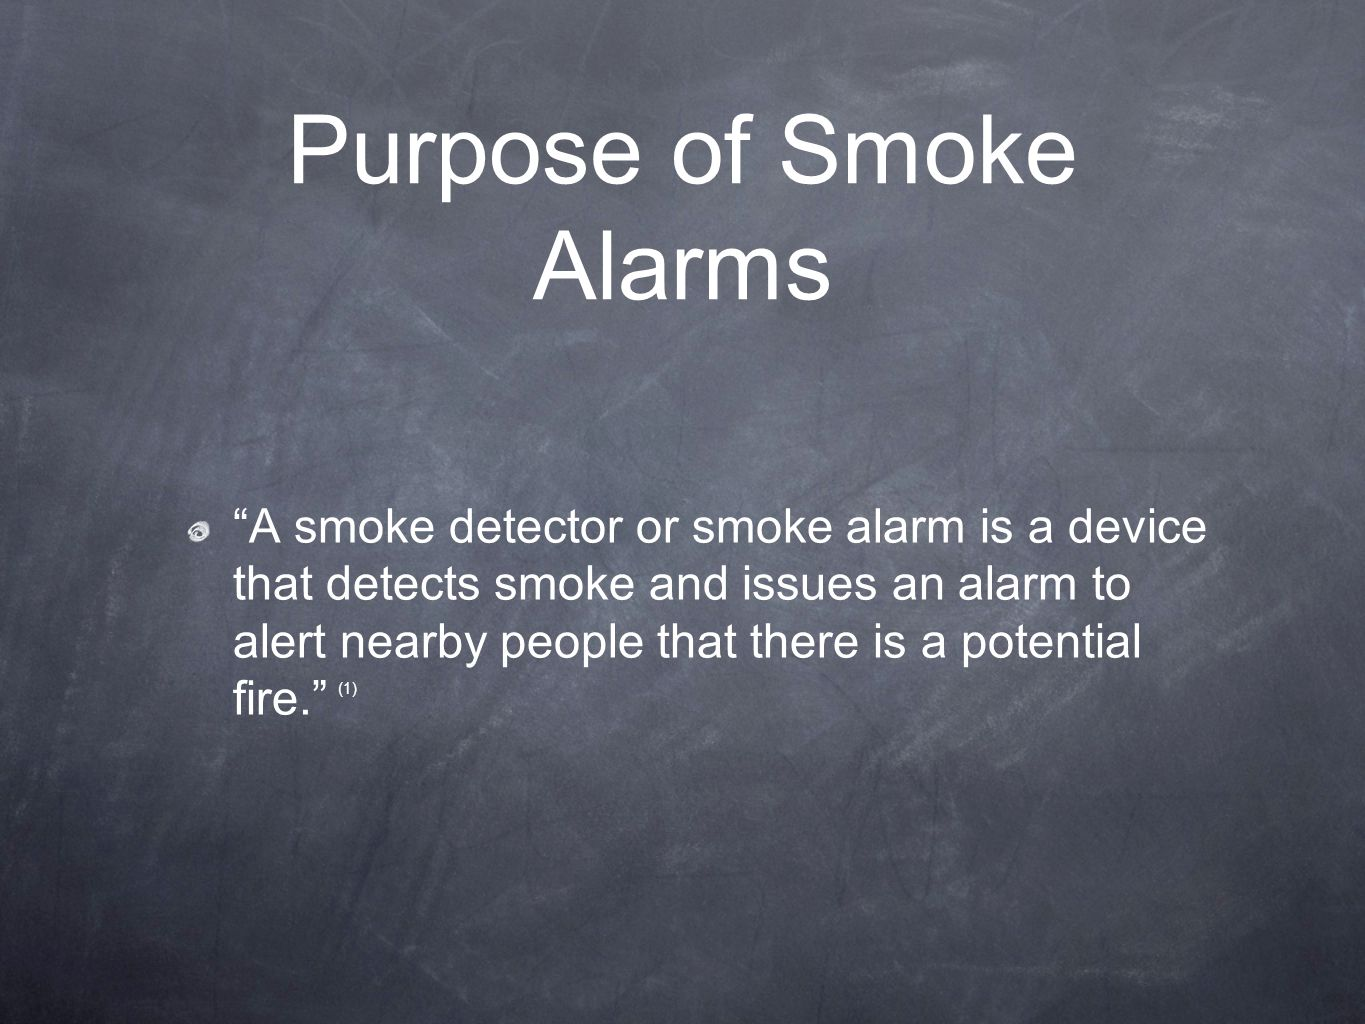 Purpose of Smoke Alarms A smoke detector or smoke alarm is a device that detects smoke and issues an alarm to alert nearby people that there is a potential fire. (1)